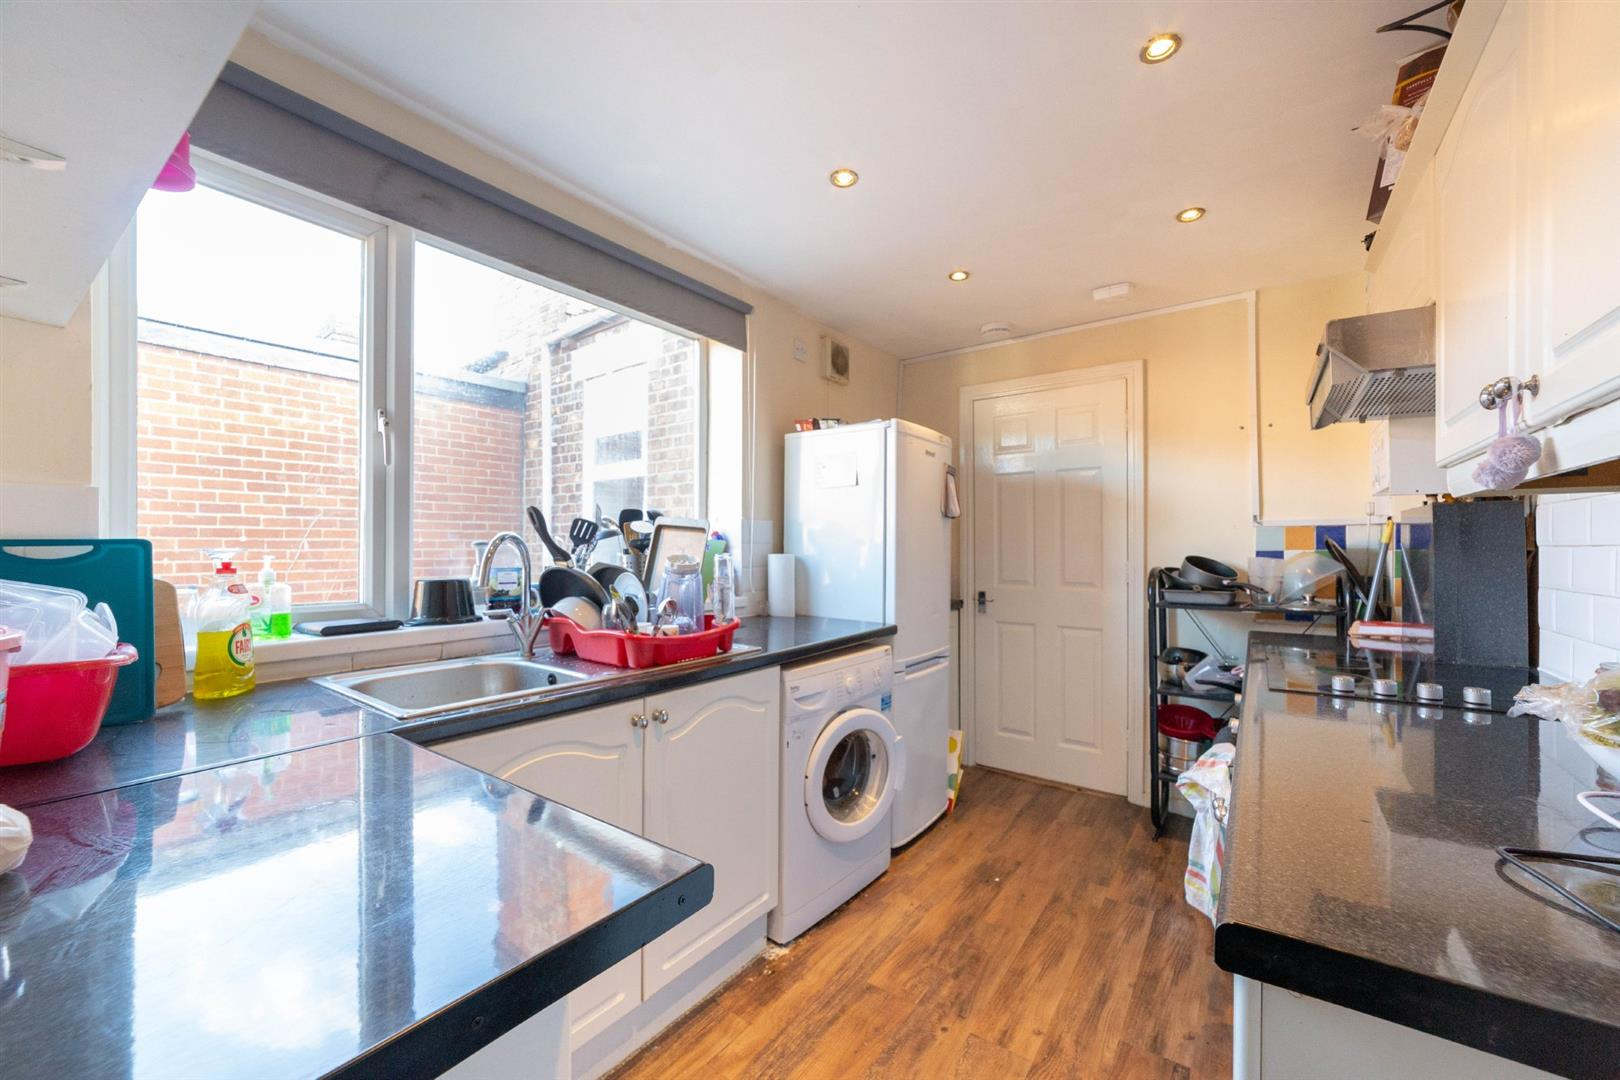 5 bed maisonette to rent in Newcastle Upon Tyne, NE6 5AR - Property Image 1